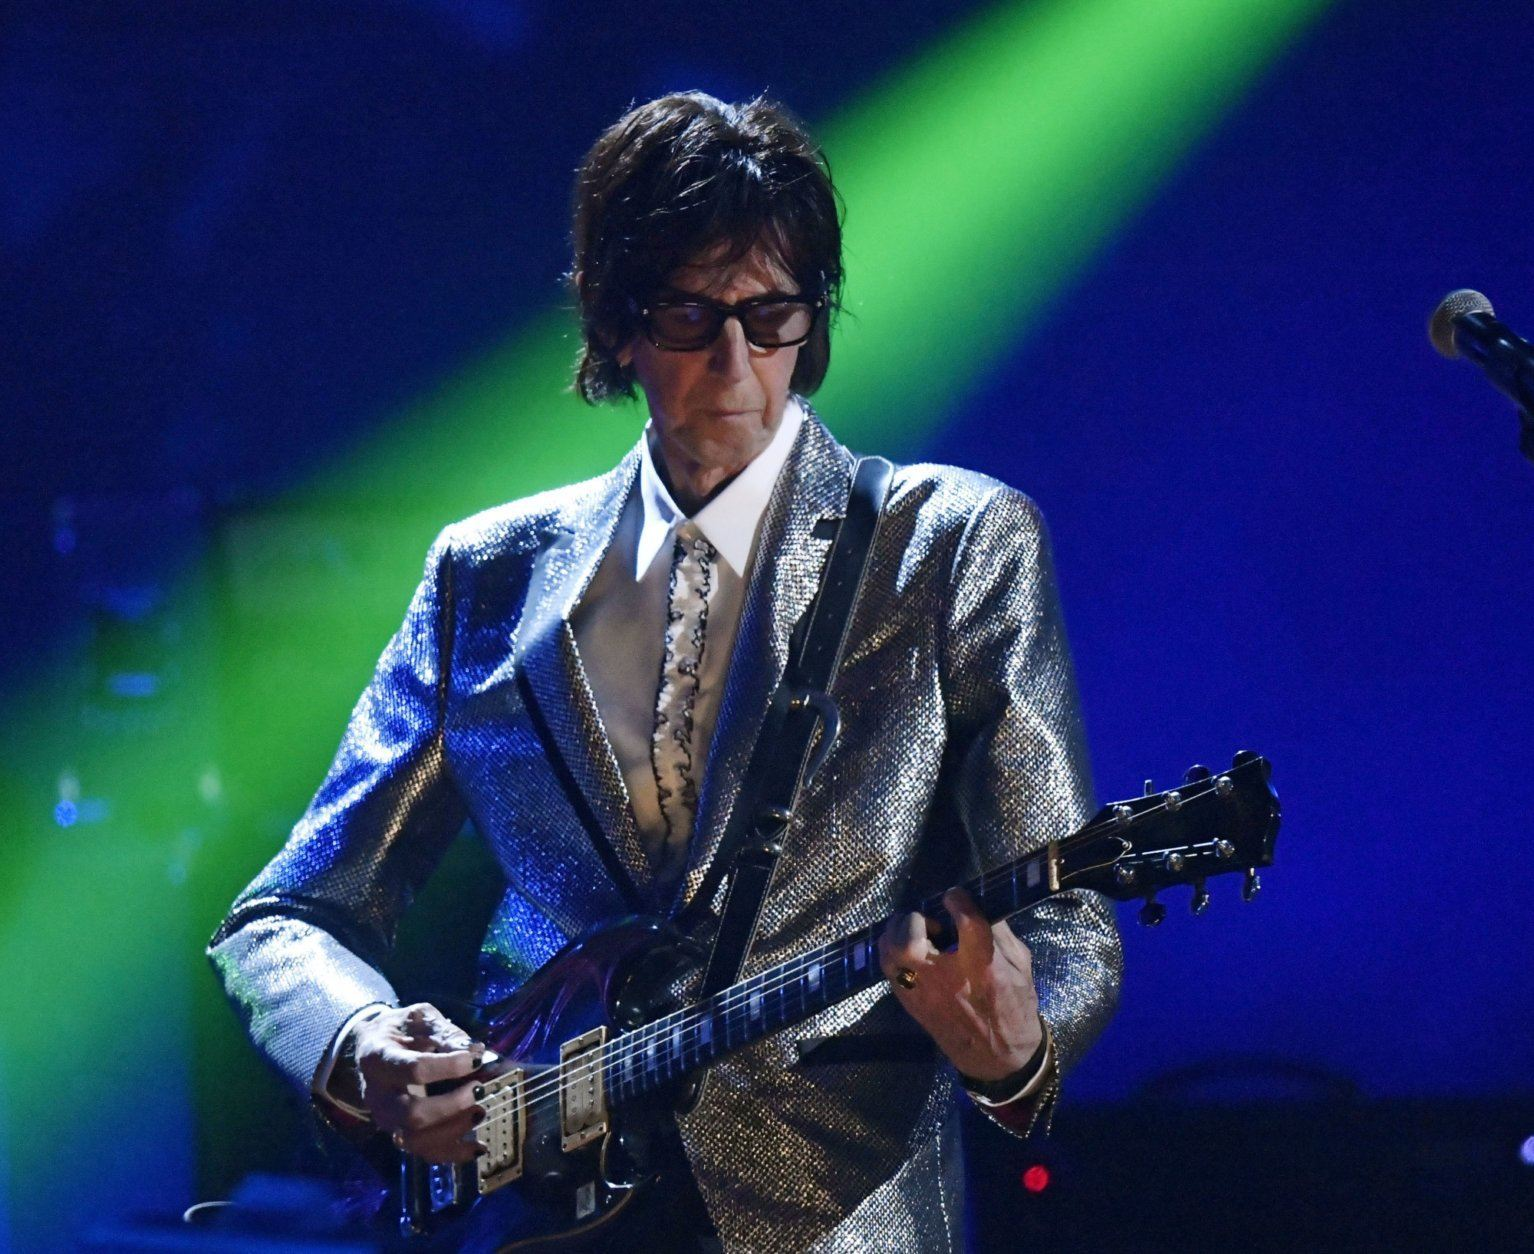 <p><strong>Sept. 15: Ric Ocasek of The Cars at age 75</strong></p>